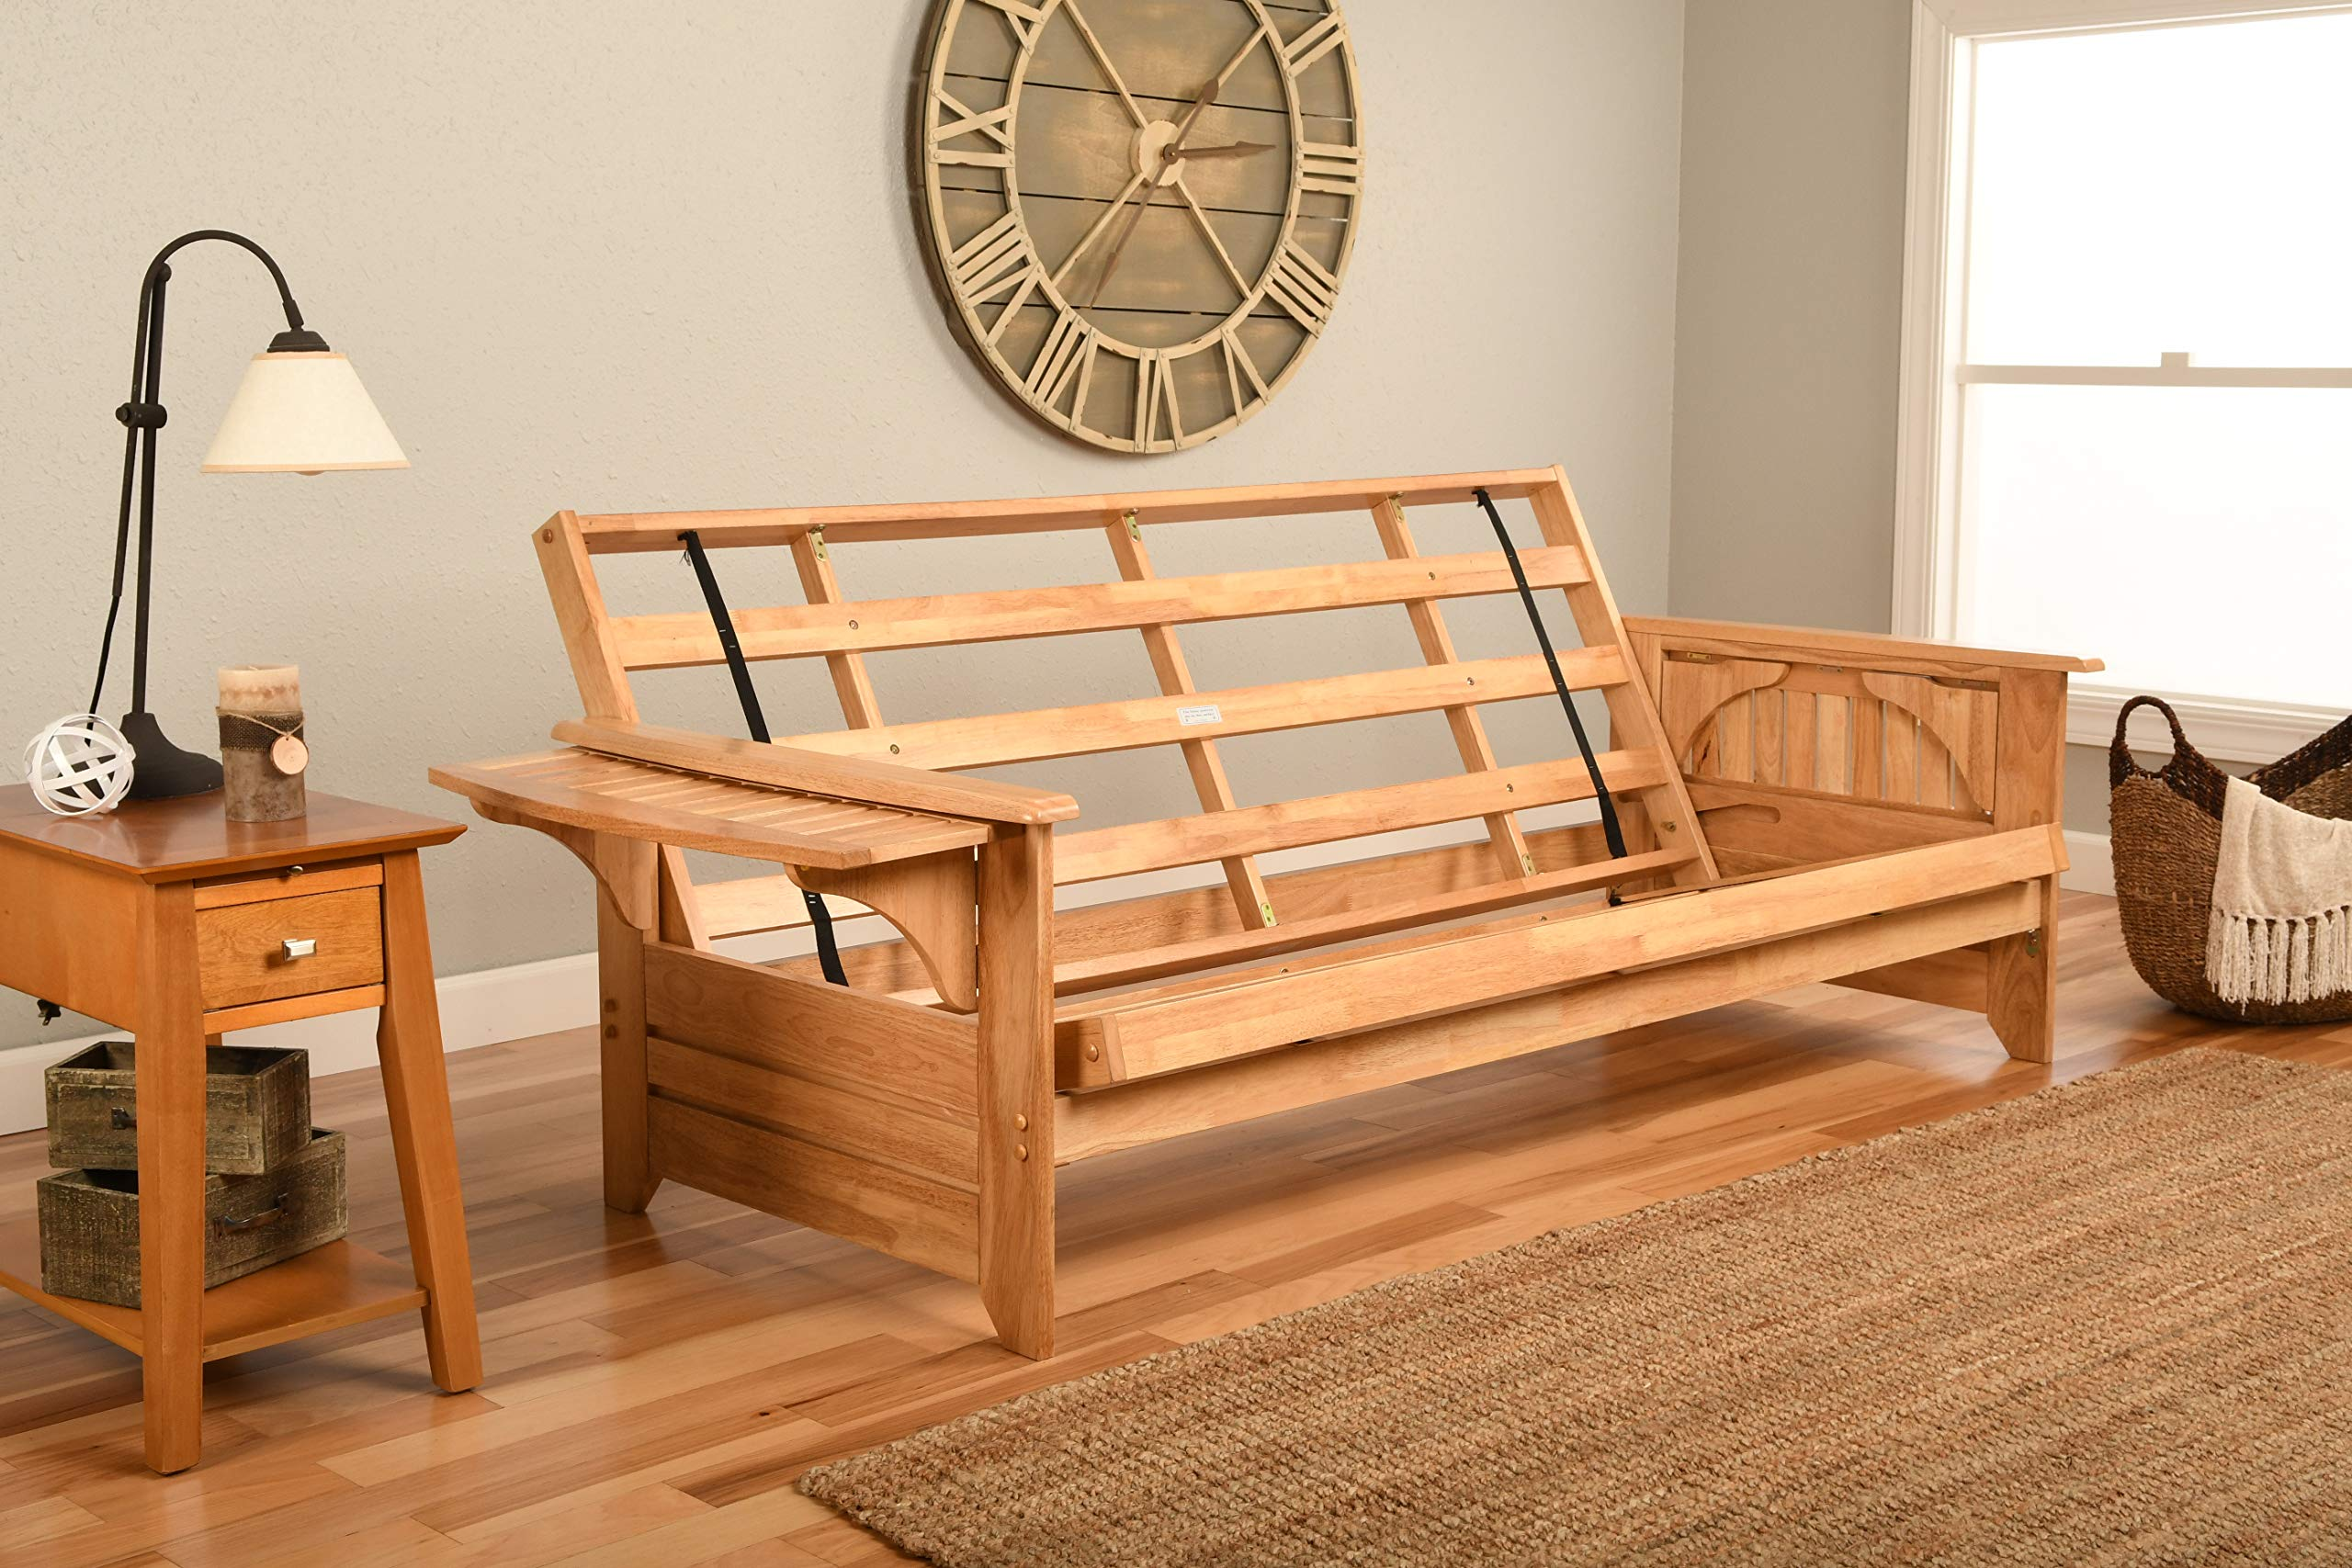 Phoenix Futon Sofa Frame in Natural Finish by Kodiak Futons